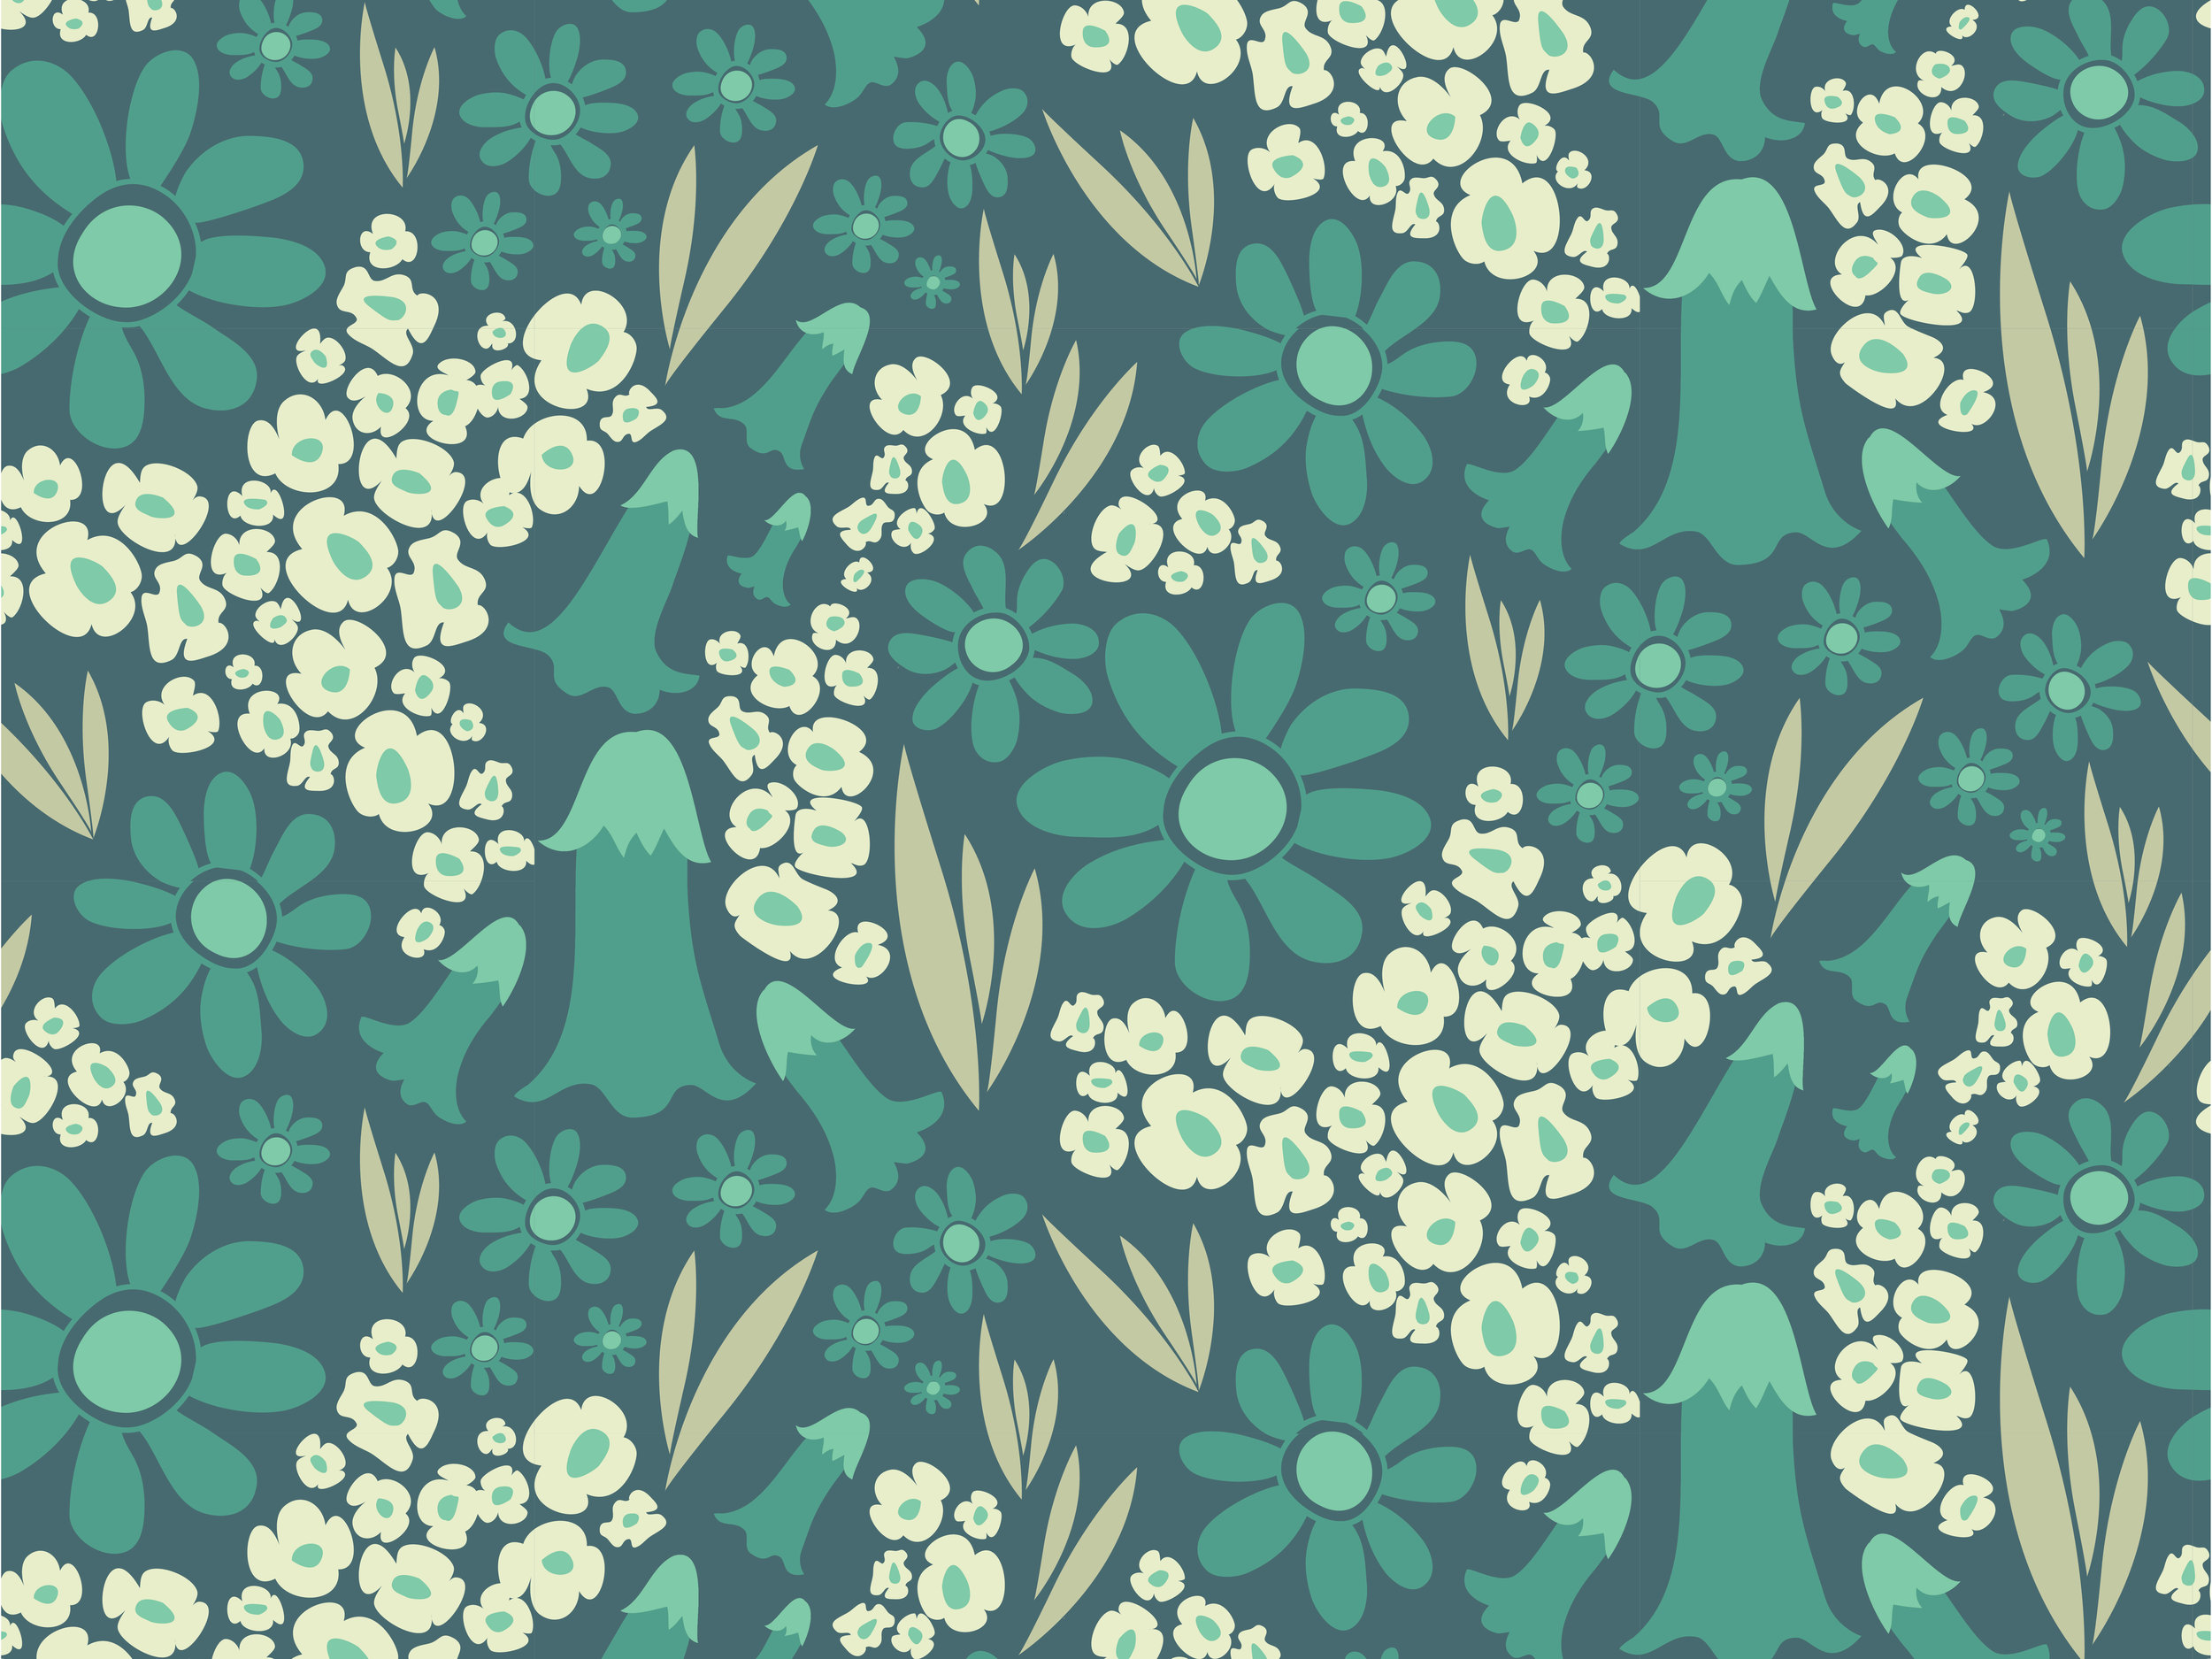 Daisies for Days (Green) half-drop repeat pattern